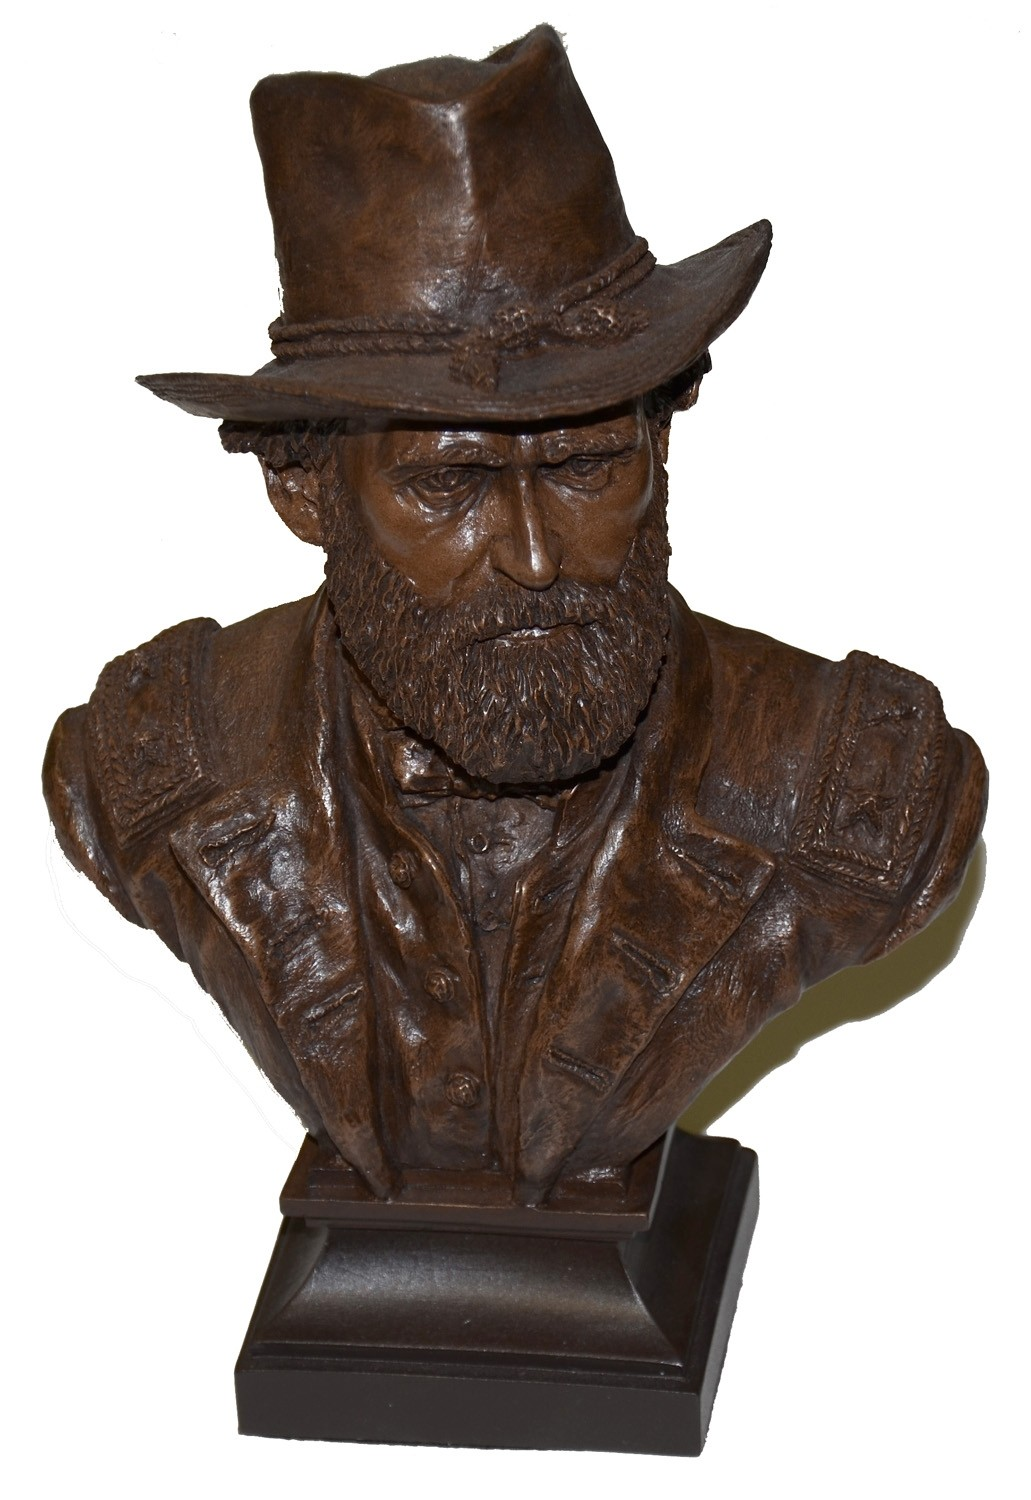 GENERAL ULYSSES S. GRANT BUST BY RON TUNISON